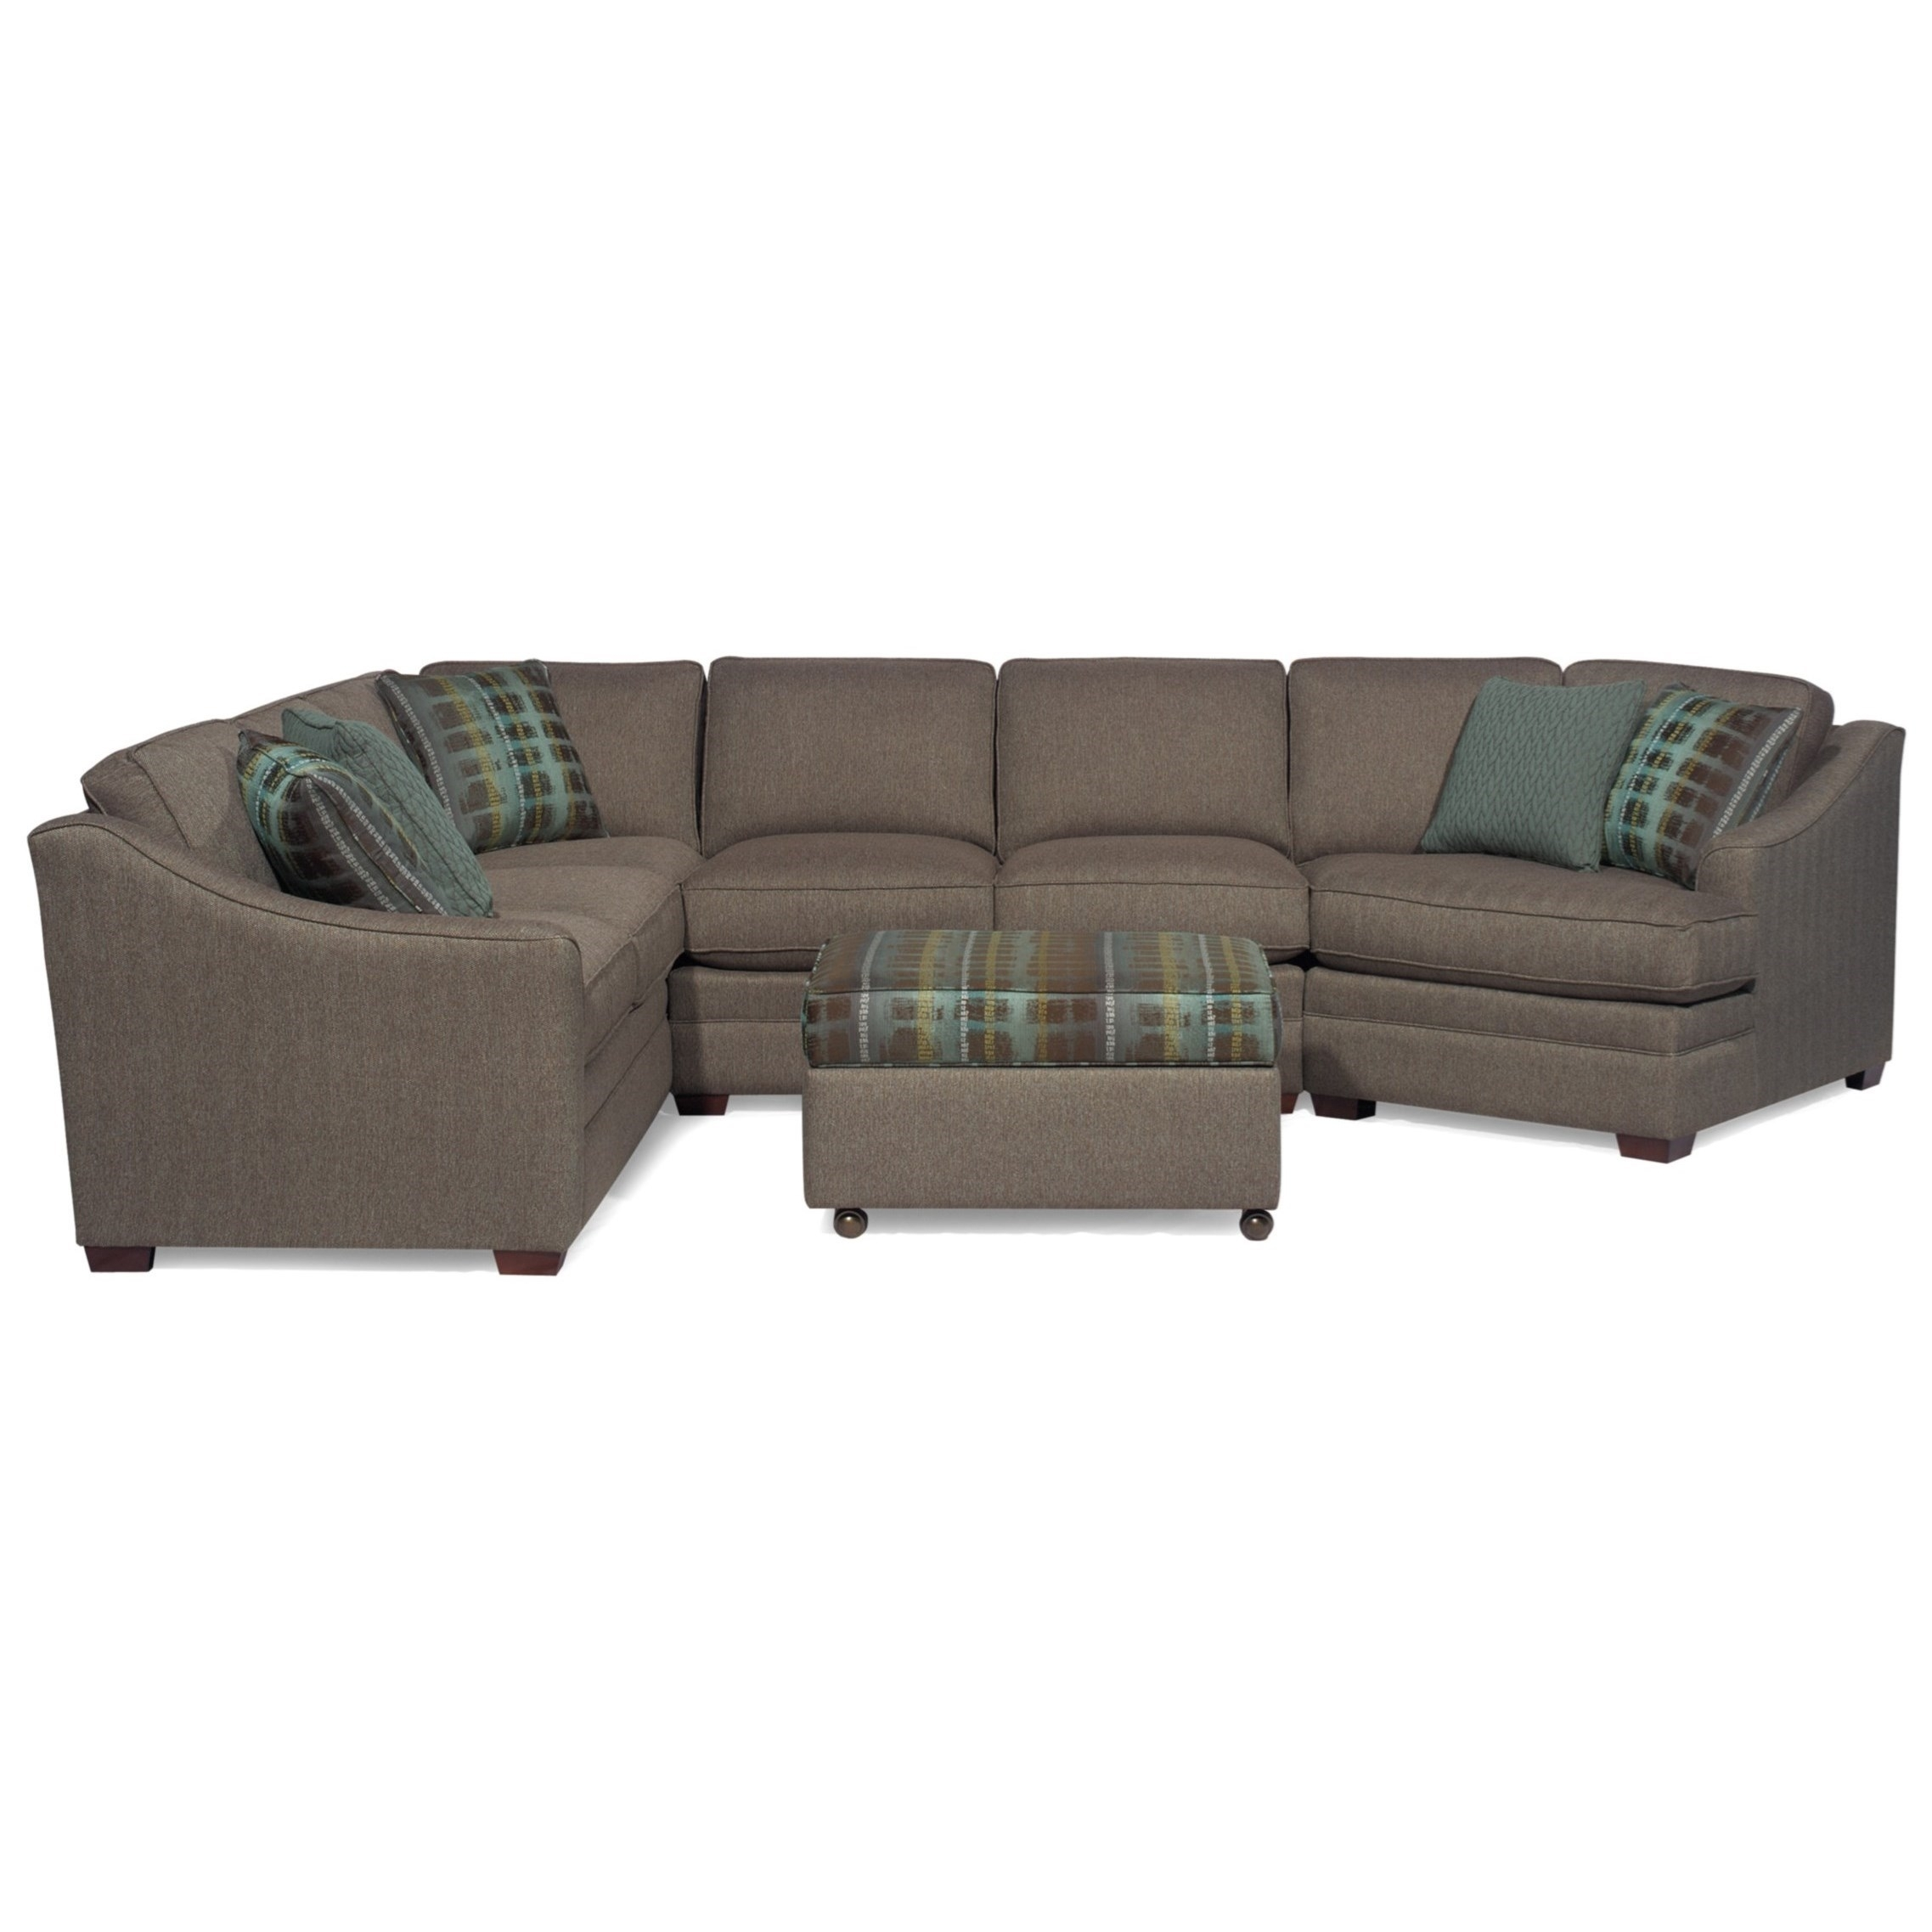 Craftmaster F9 Custom Collection <B>Customizable</b> 3 Piece Regarding Meyer 3 Piece Sectionals With Raf Chaise (Image 6 of 25)